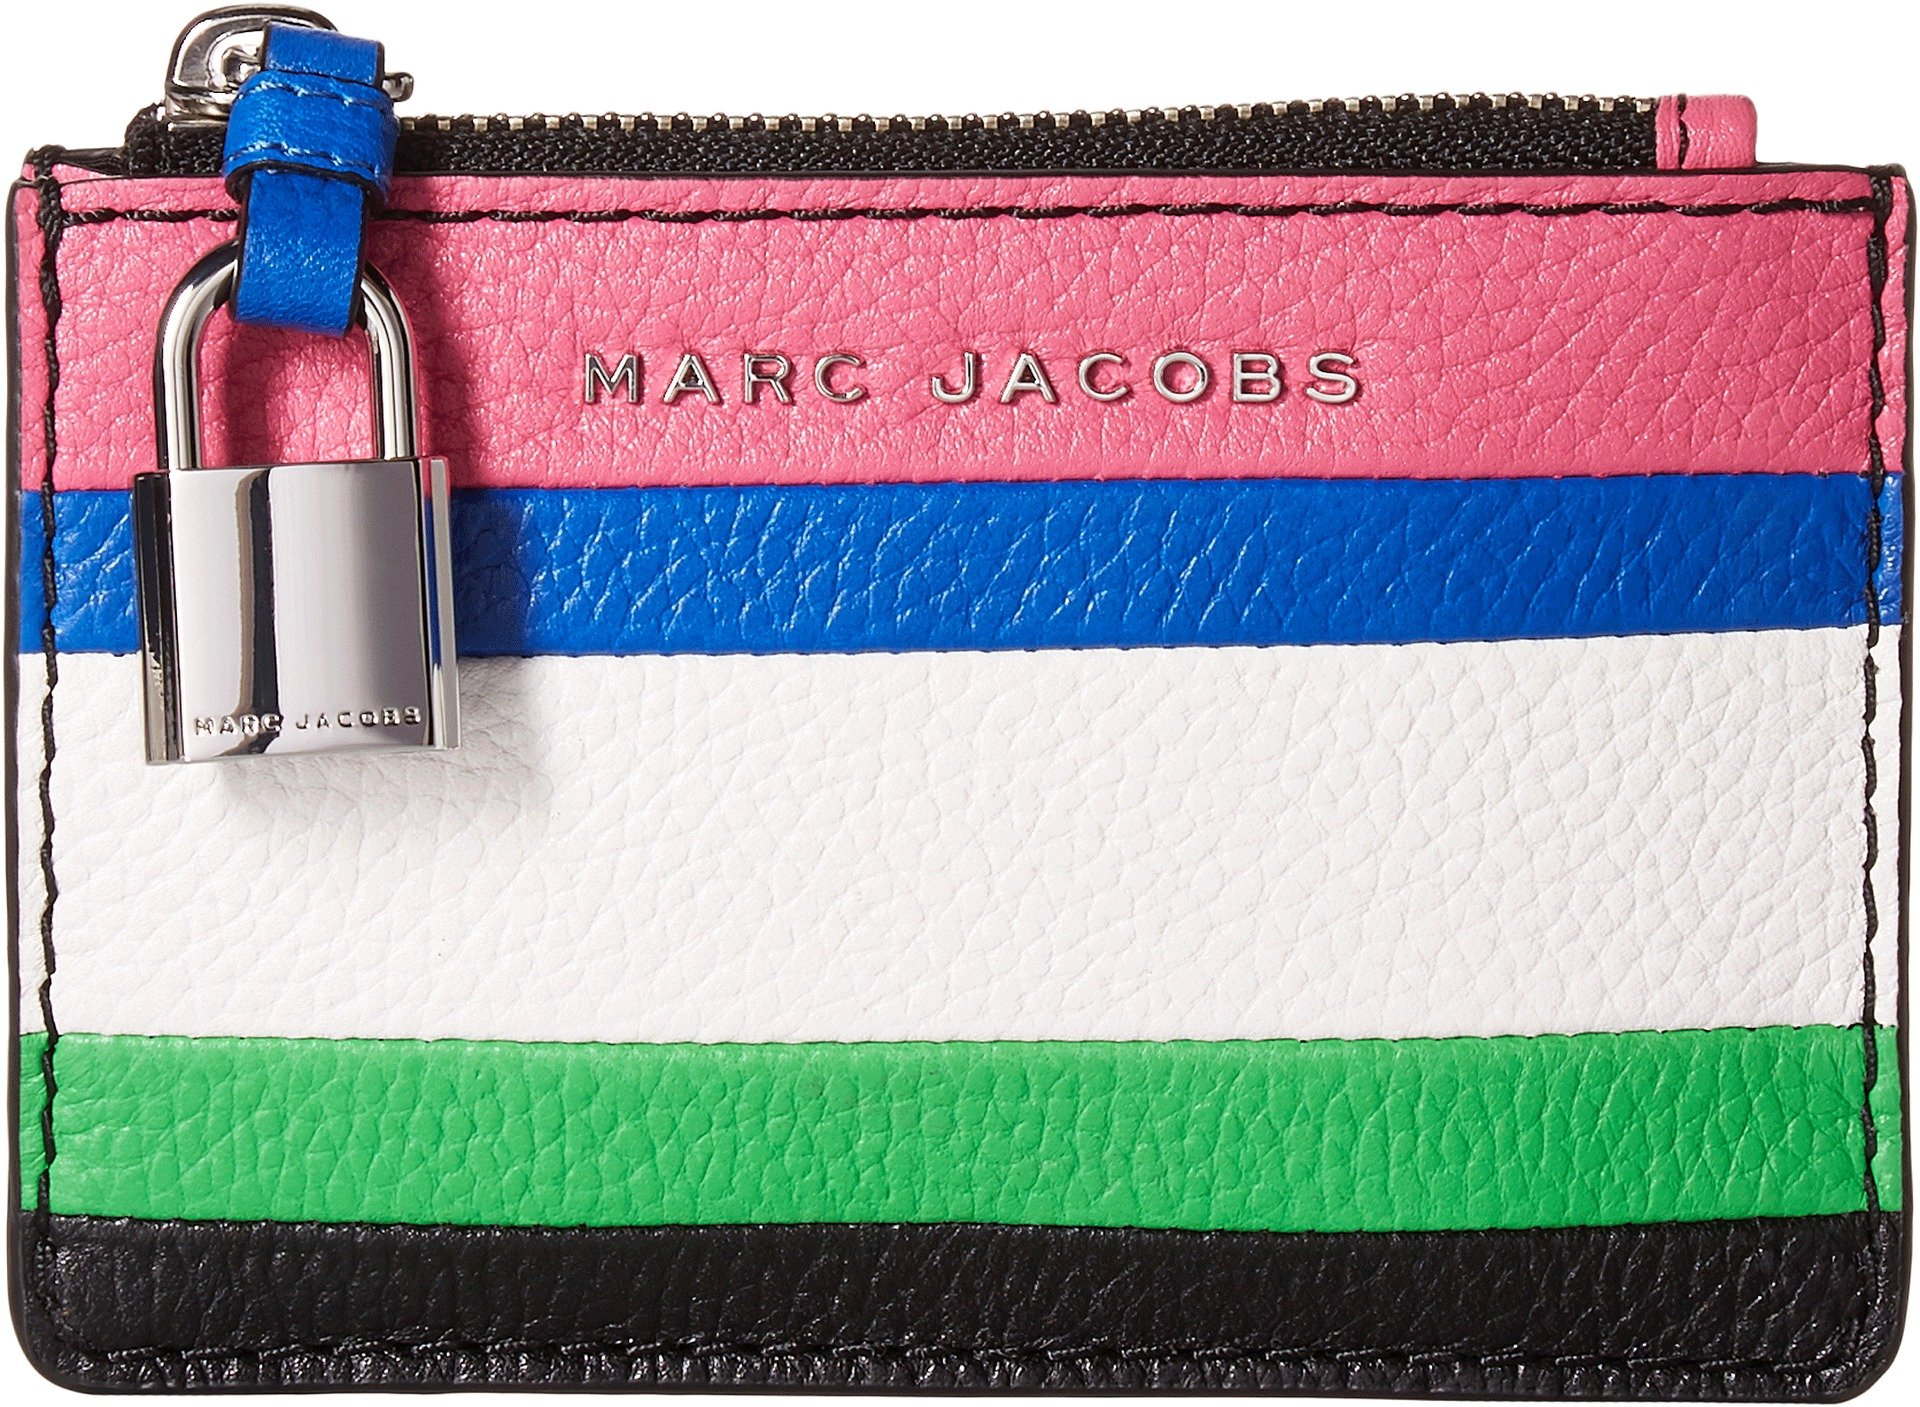 Marc Jacobs Women's The Grind Color Blocked Top Zip Wallet Vivid Pink Multi One Size